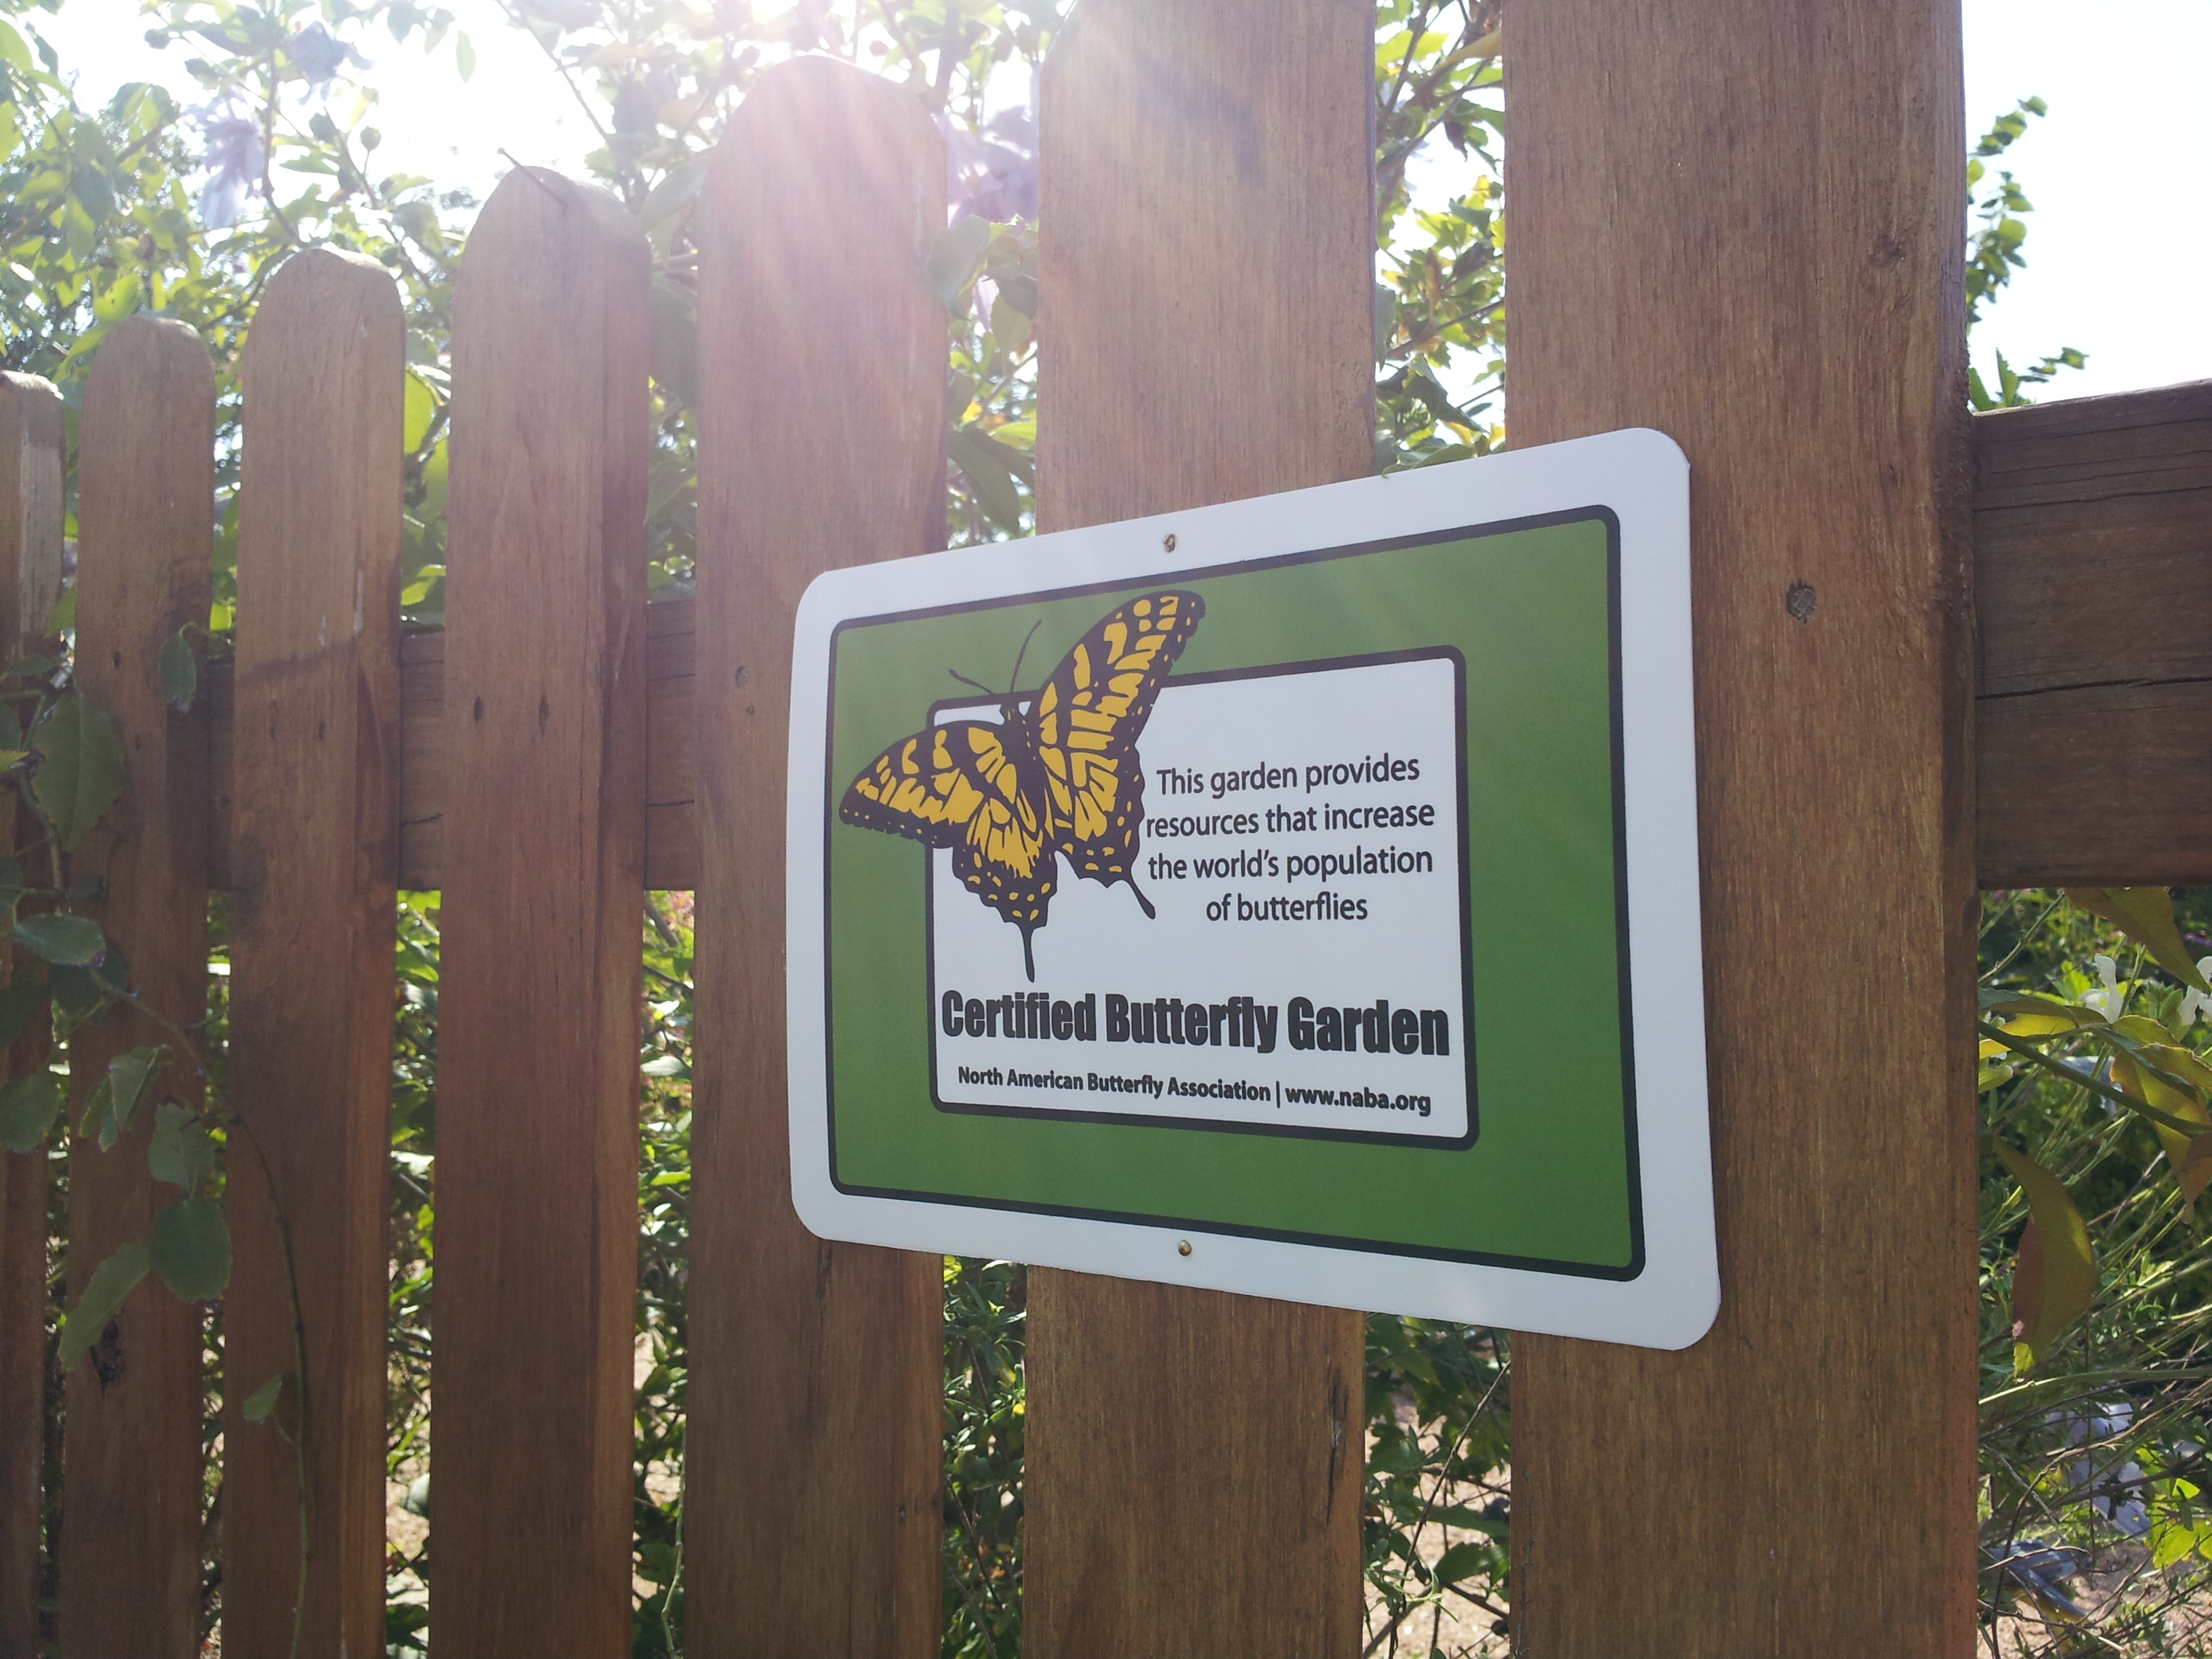 Superbe NABA Certified Butterfly Garden #1075 At The Texas Quilt Museum